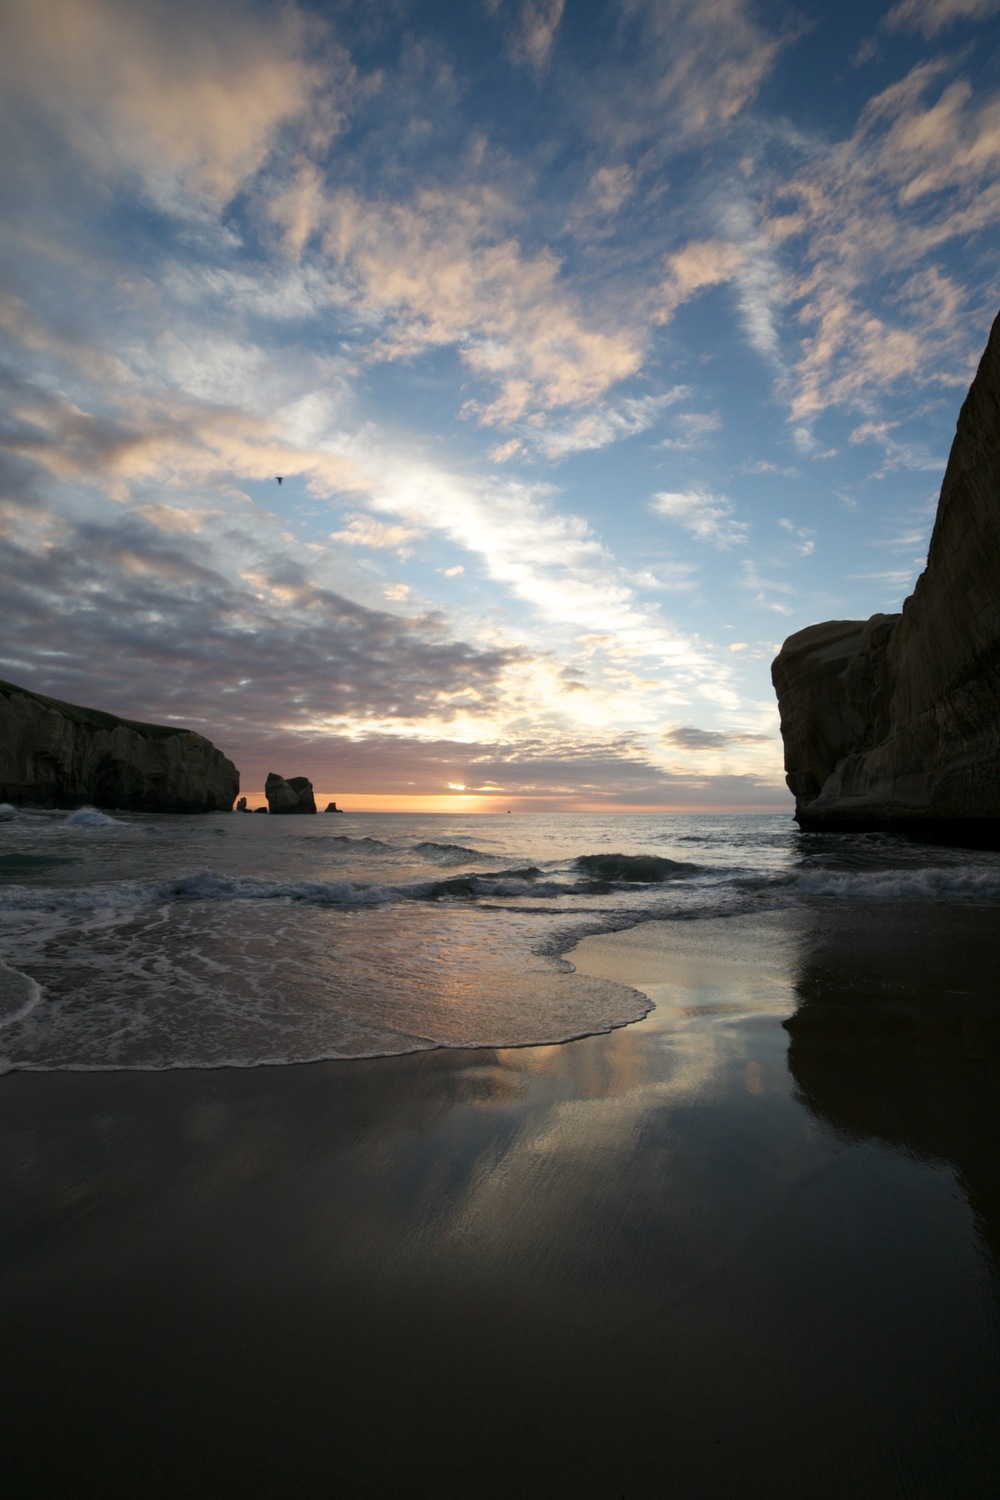 Sunrise with sea and waves and sky reflections at Tunnel Beach